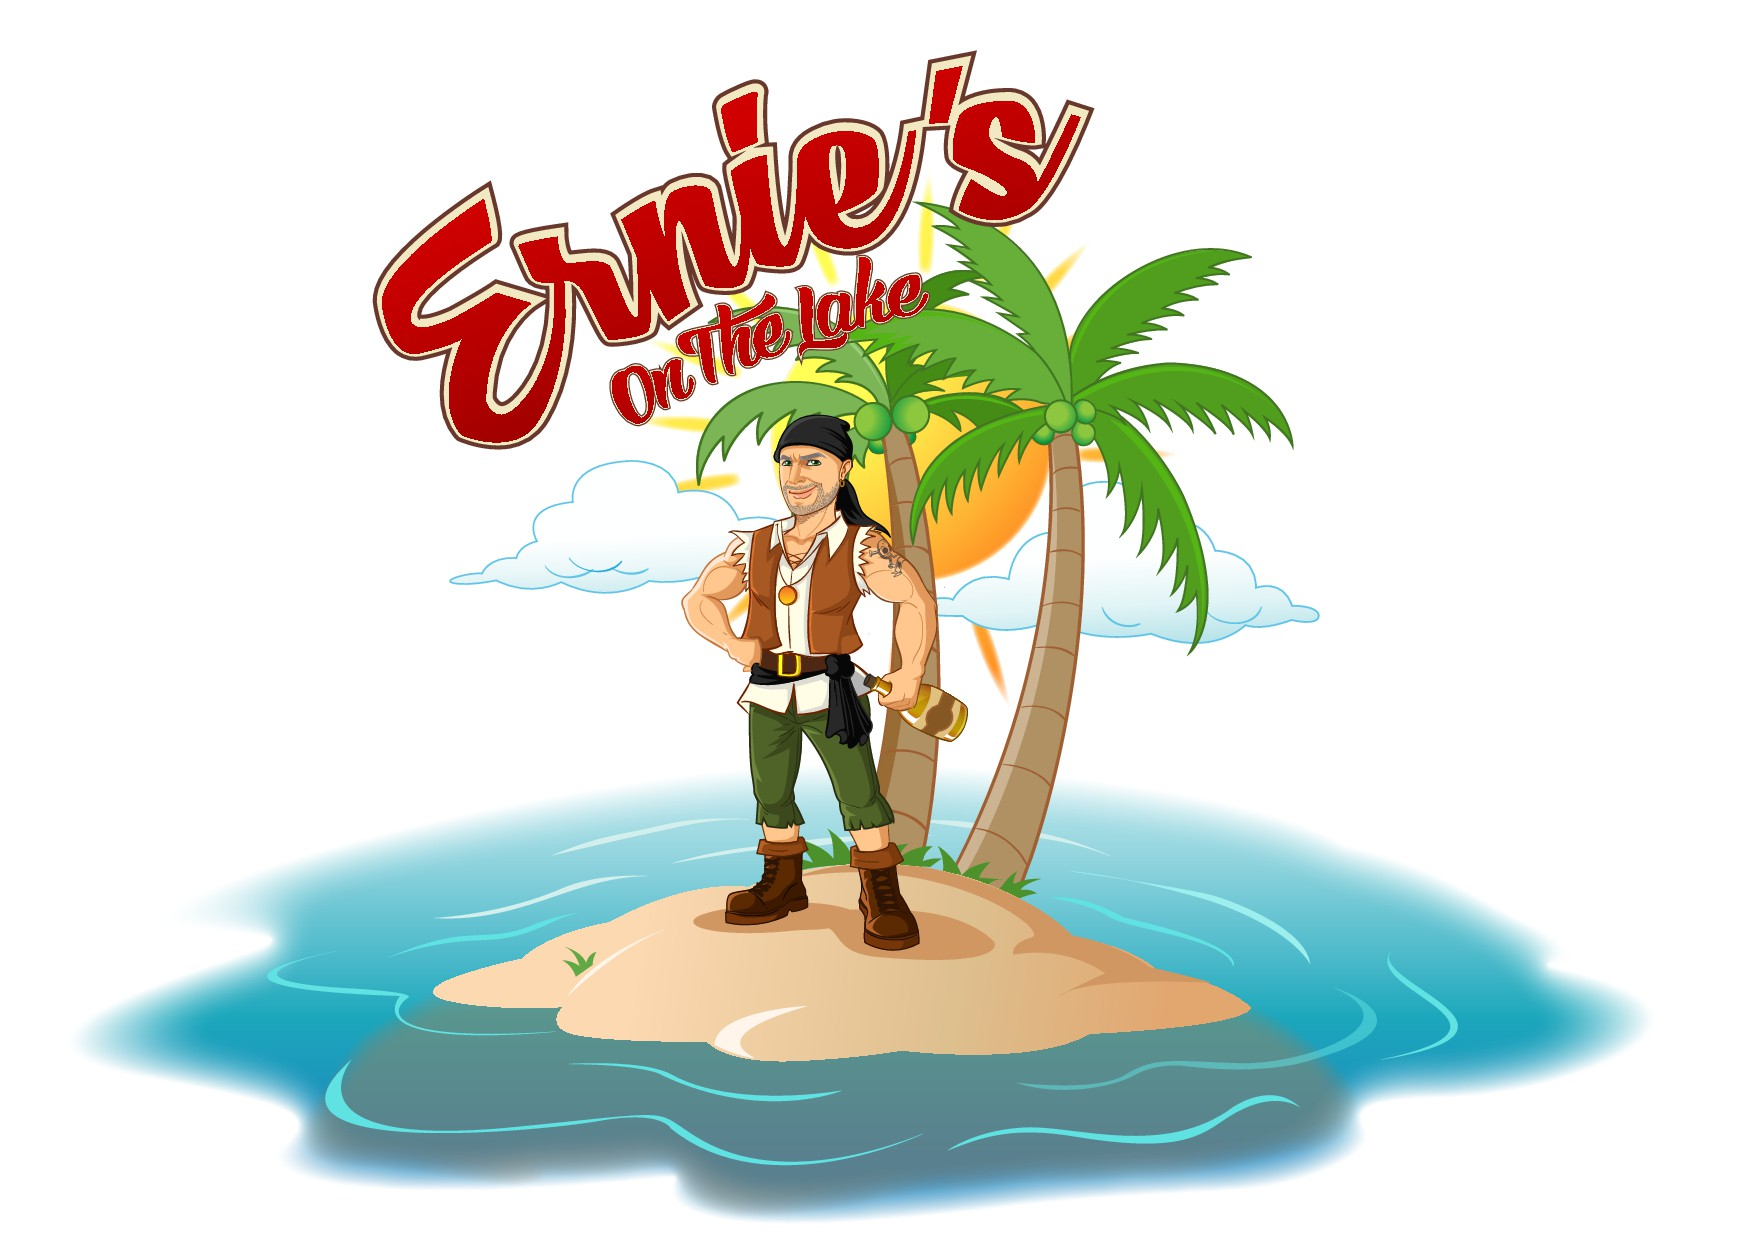 Create edgy Pirate character and logo for Restaurant/Bar on the Lake